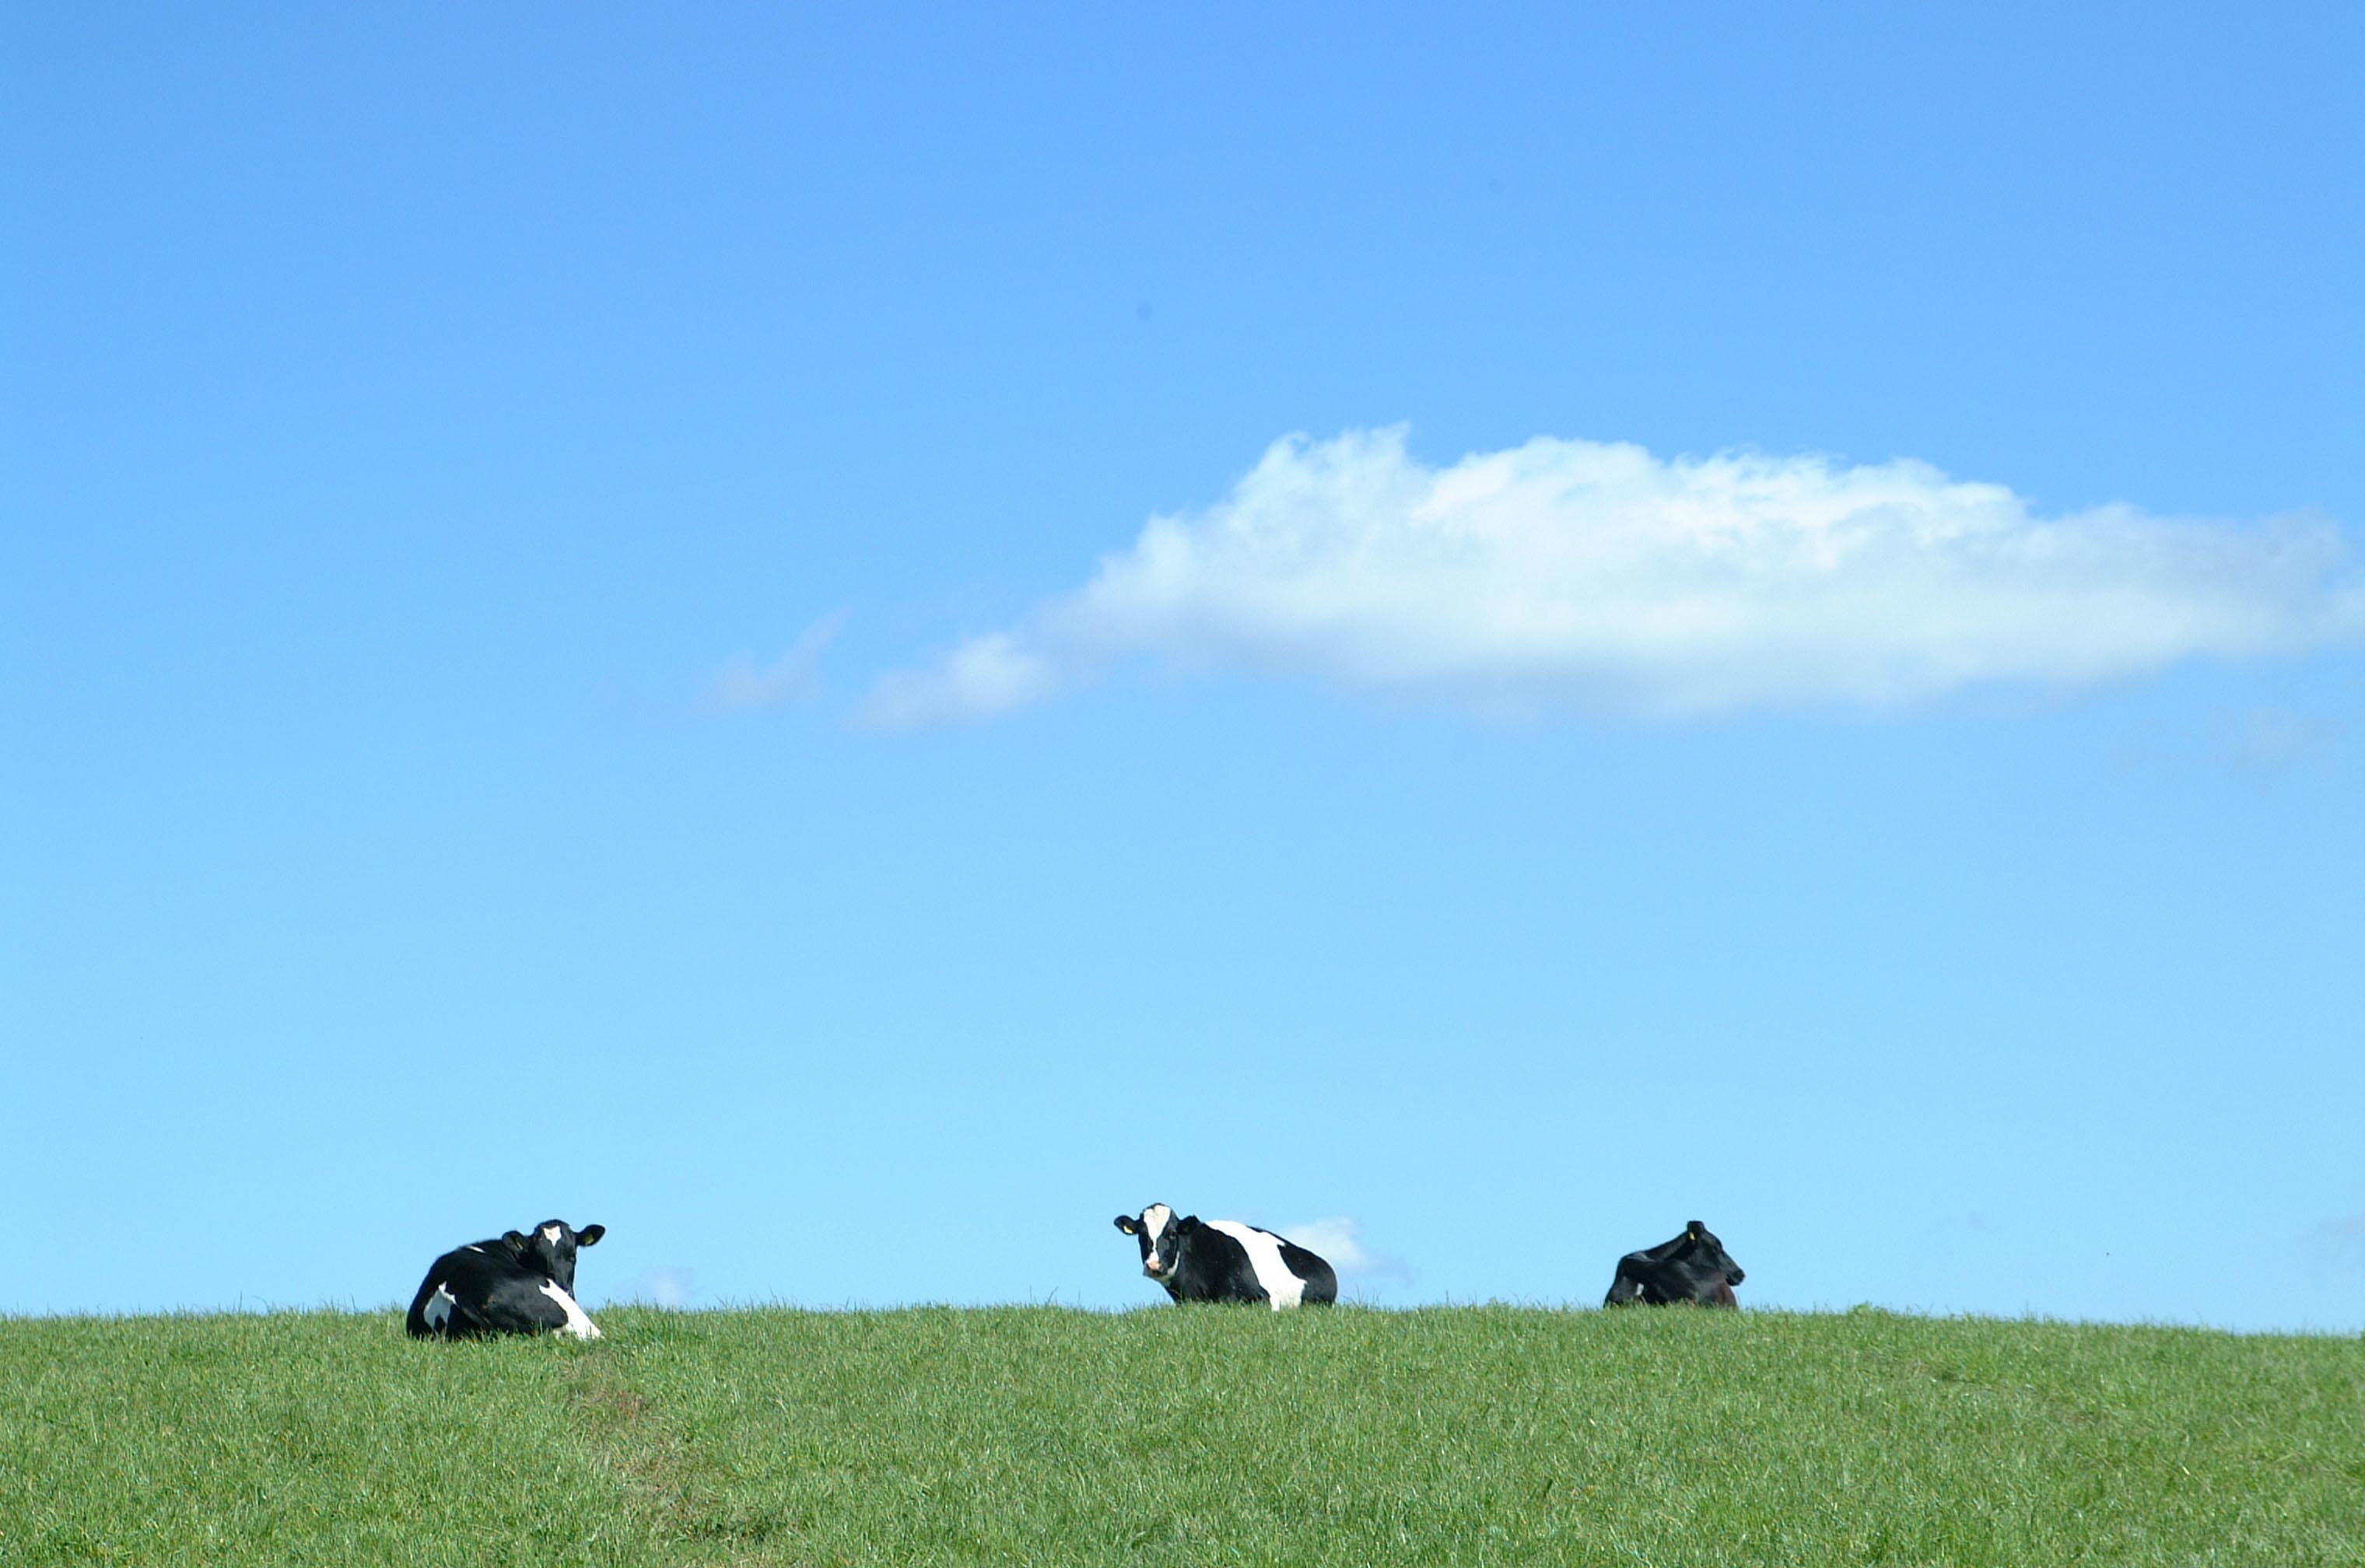 black and white cows on green grass